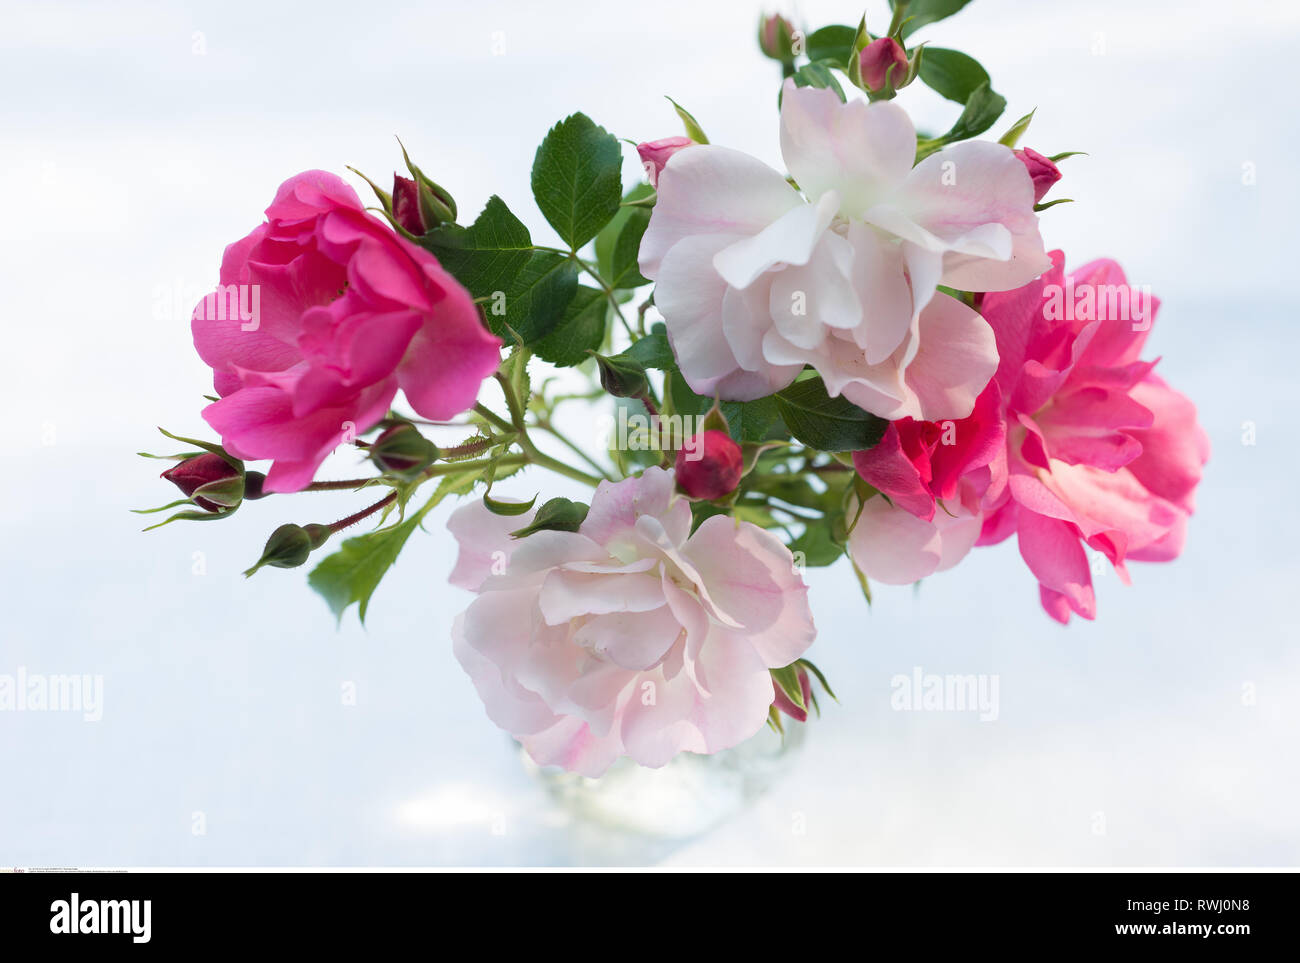 botany, Bodendecker roses as dainty bunch, Caution! For Greetingcard-Use / Postcard-Use In German Speaking Countries Certain Restrictions May Apply - Stock Image